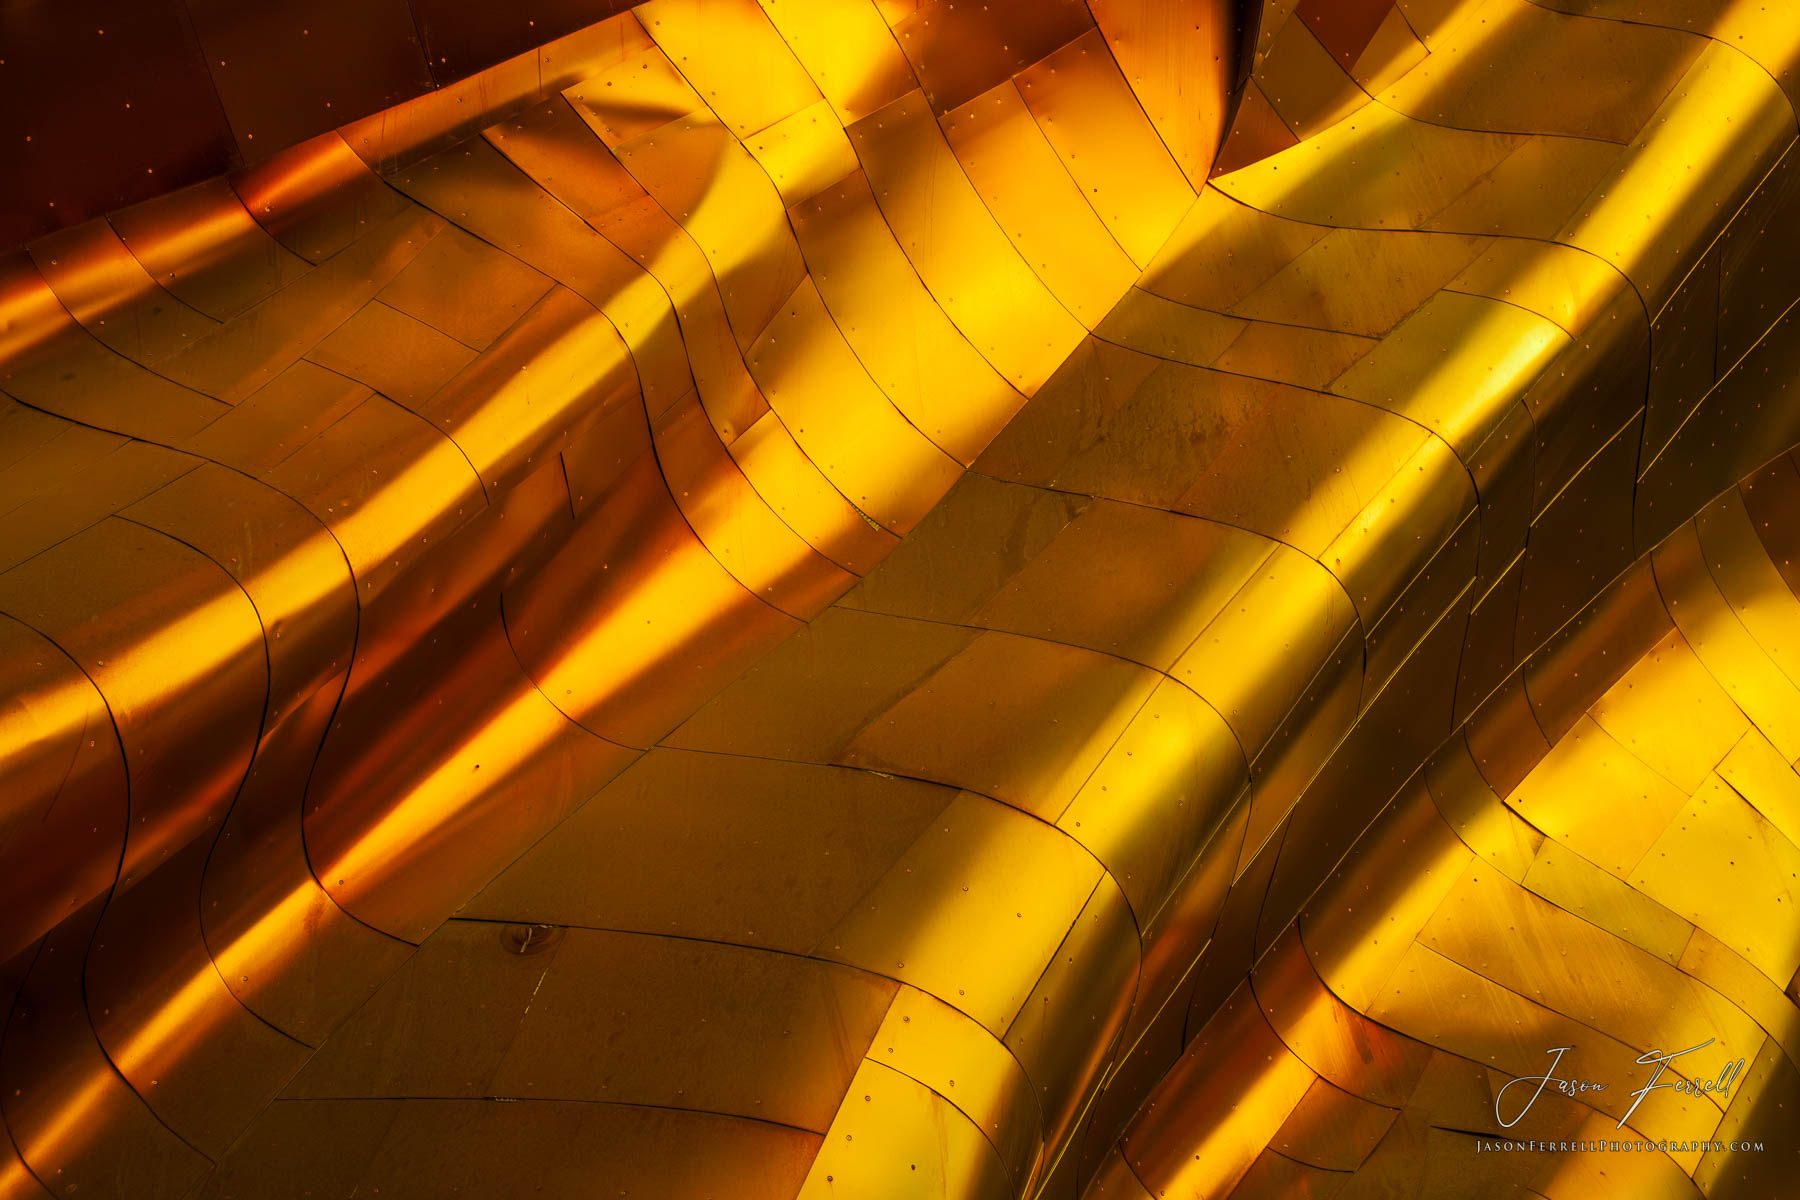 golden waves, mopop, museum, frank gehry, building, metal, seattle, washington, architecture, abstract, photo